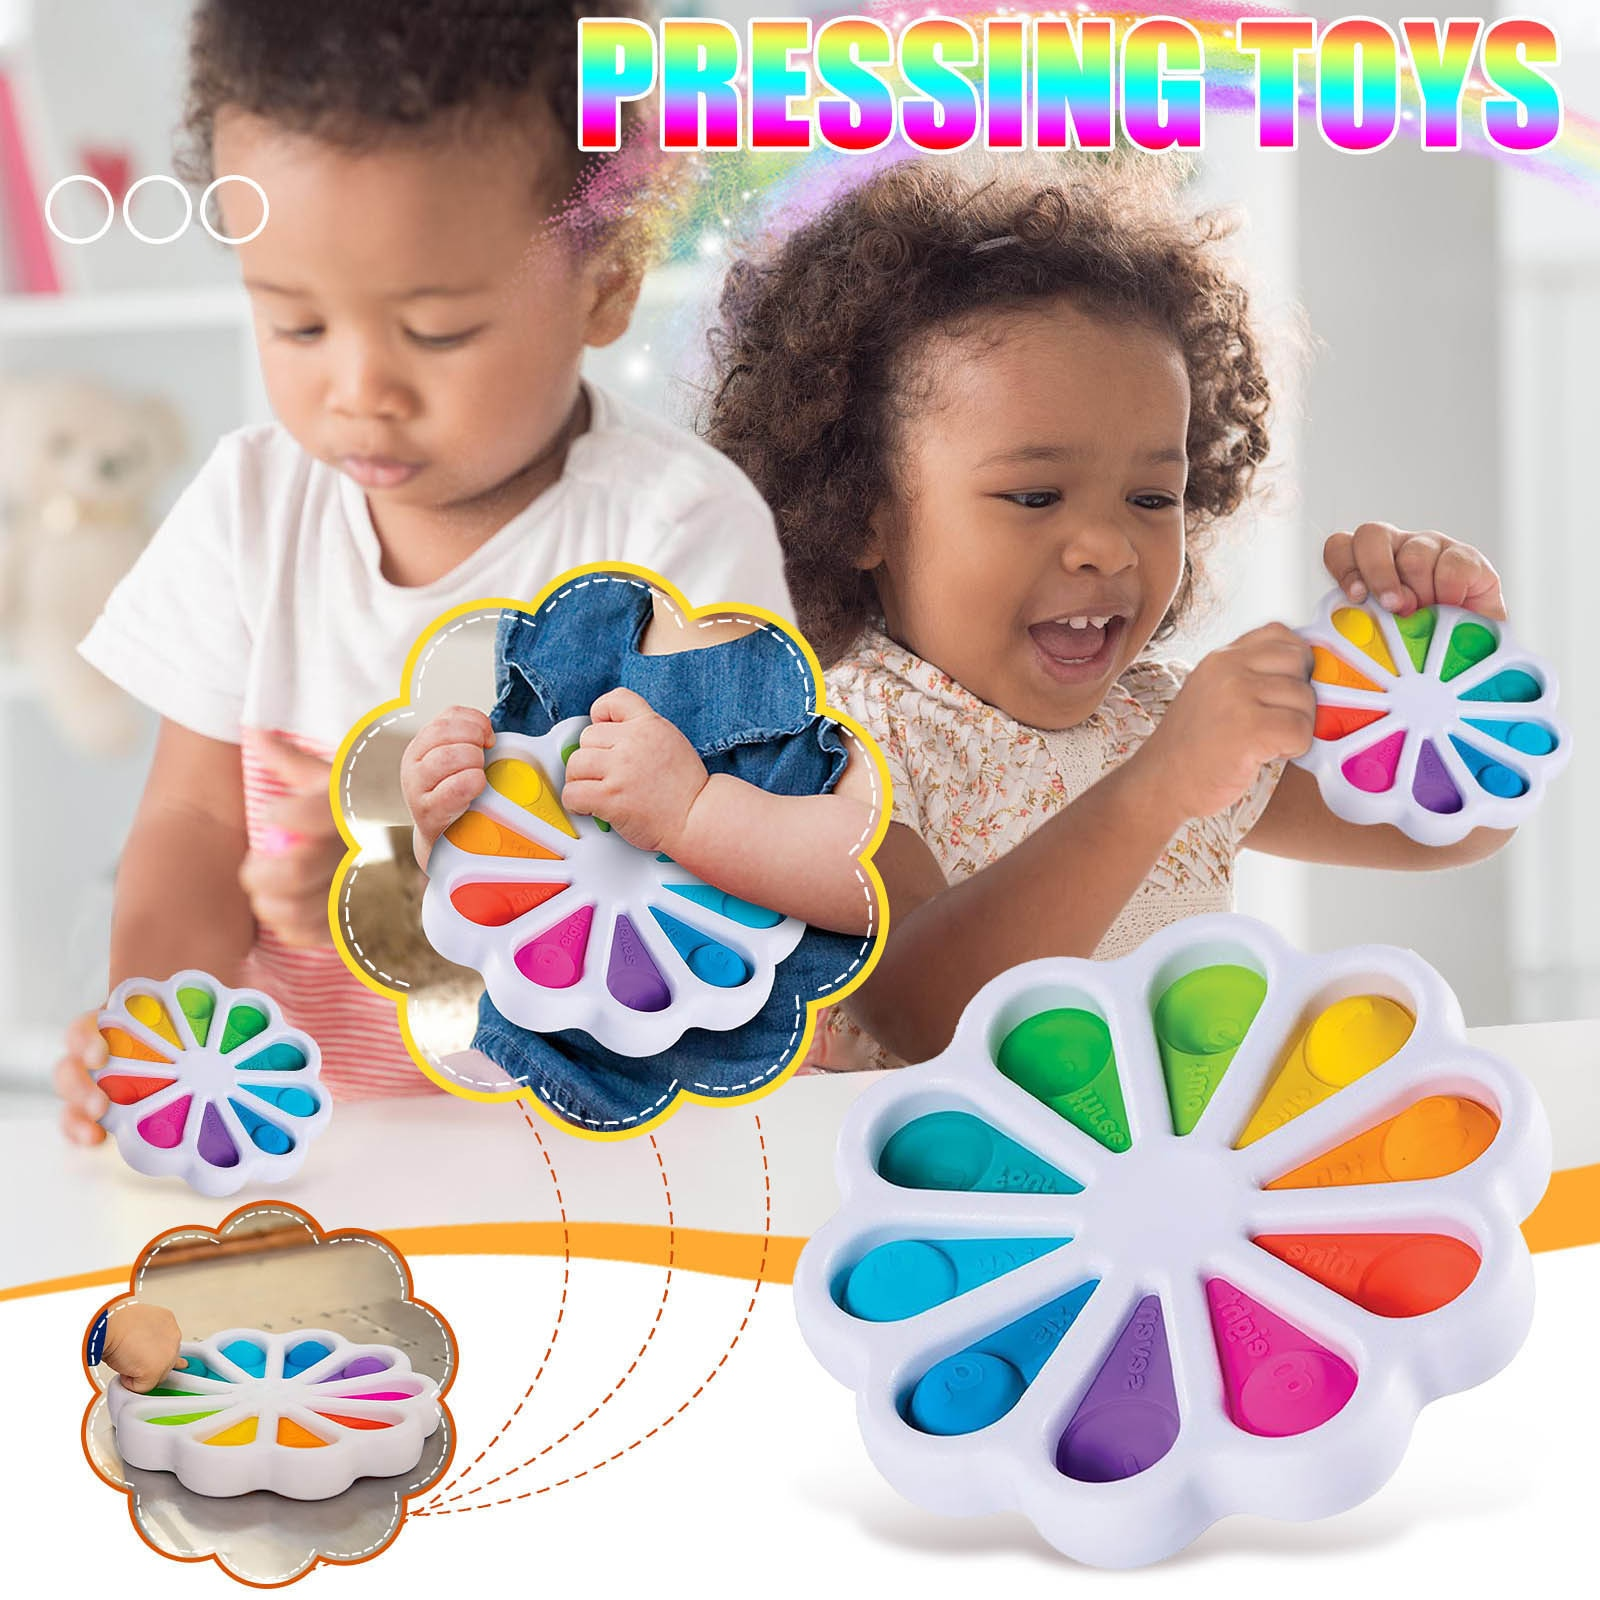 New Simple Dimple Fidget Toys Stress Reliever Toys Hand Toys for Kids Pop It Soft Silicone Decompression Toy Antistress squishy enlarge